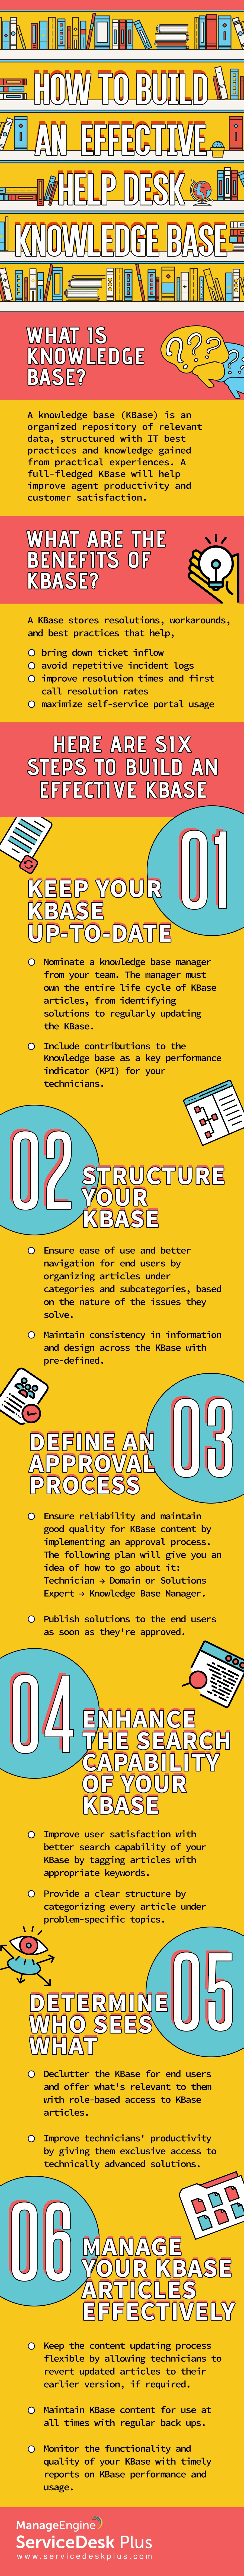 How to Build an Effective Help Desk Knowledge Base Infographic